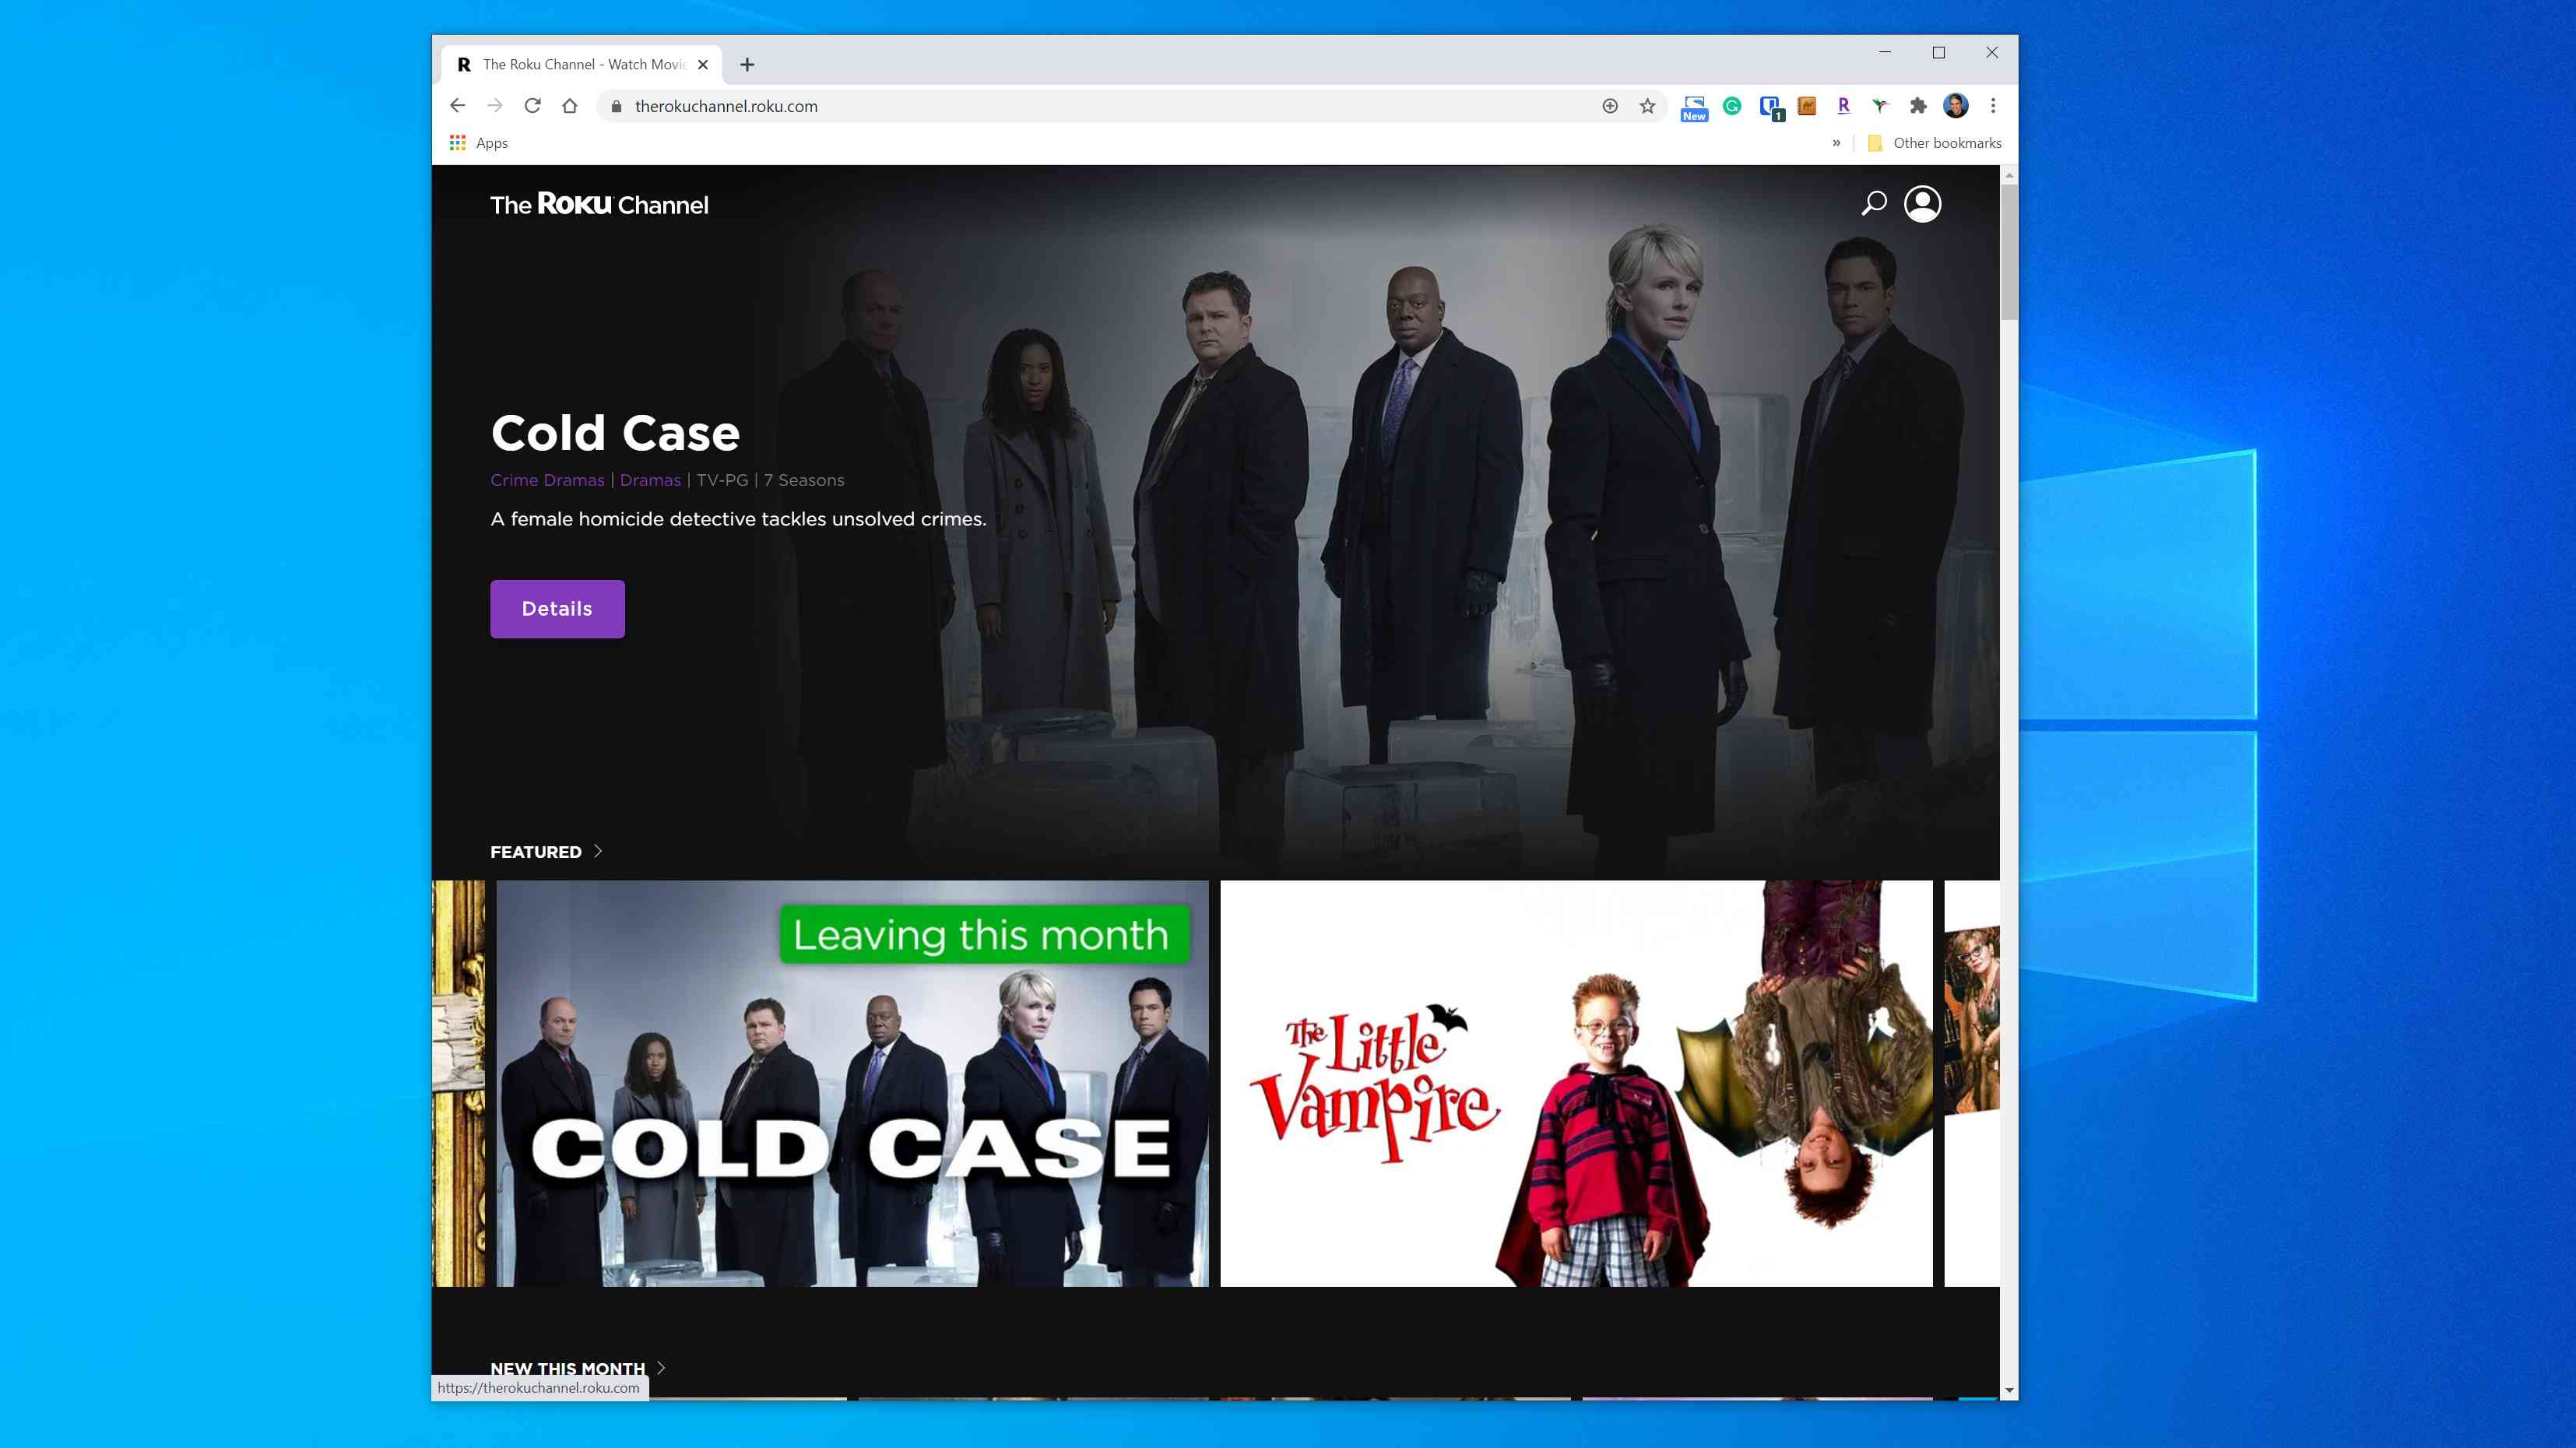 The Roku Channel web page